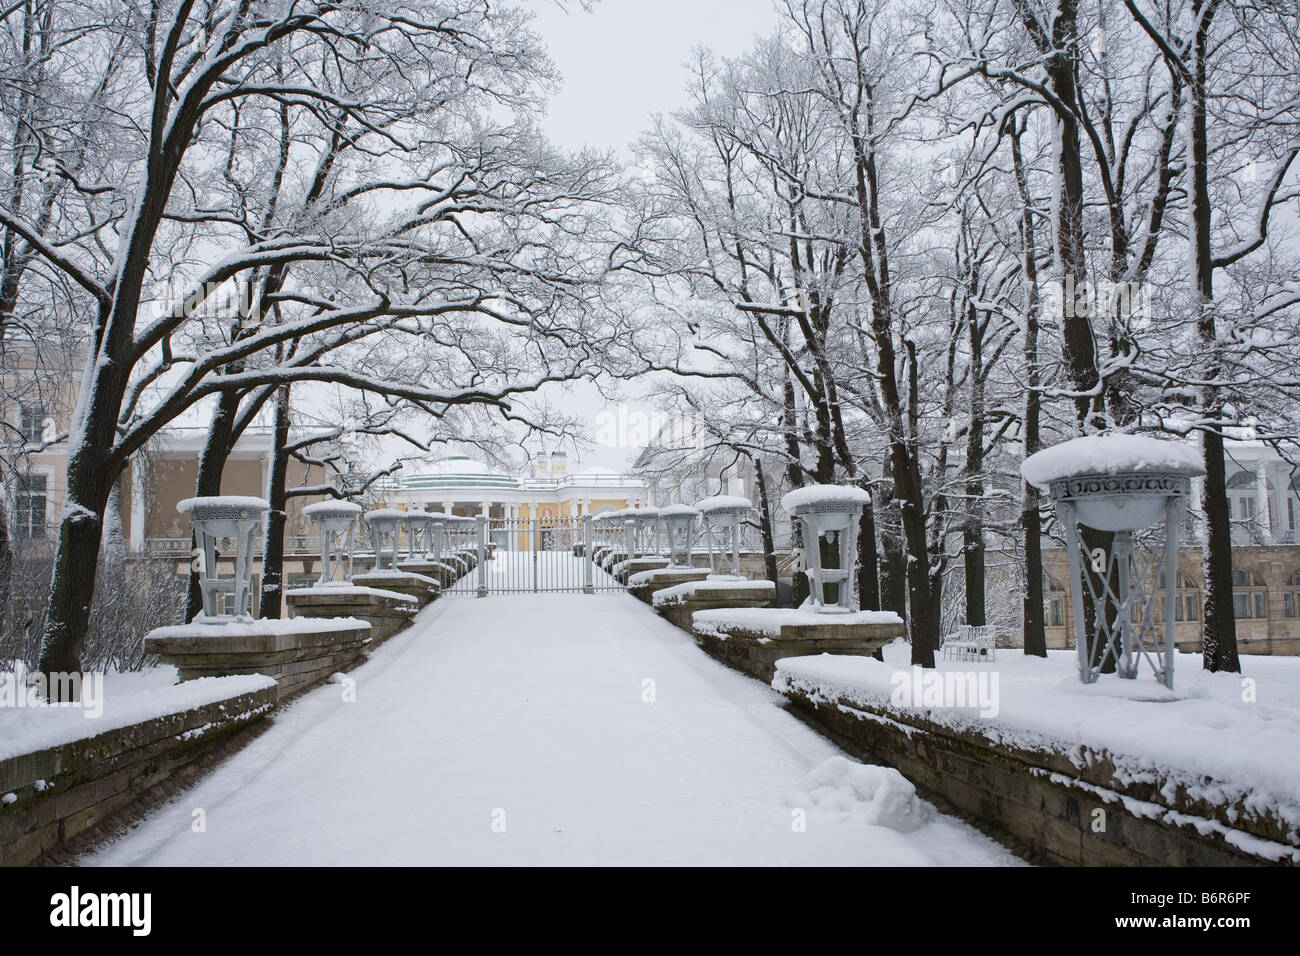 The Catherine Park, Tsarskoe Selo, Pushkin, Saint-Petersburg, Russia. Stock Photo